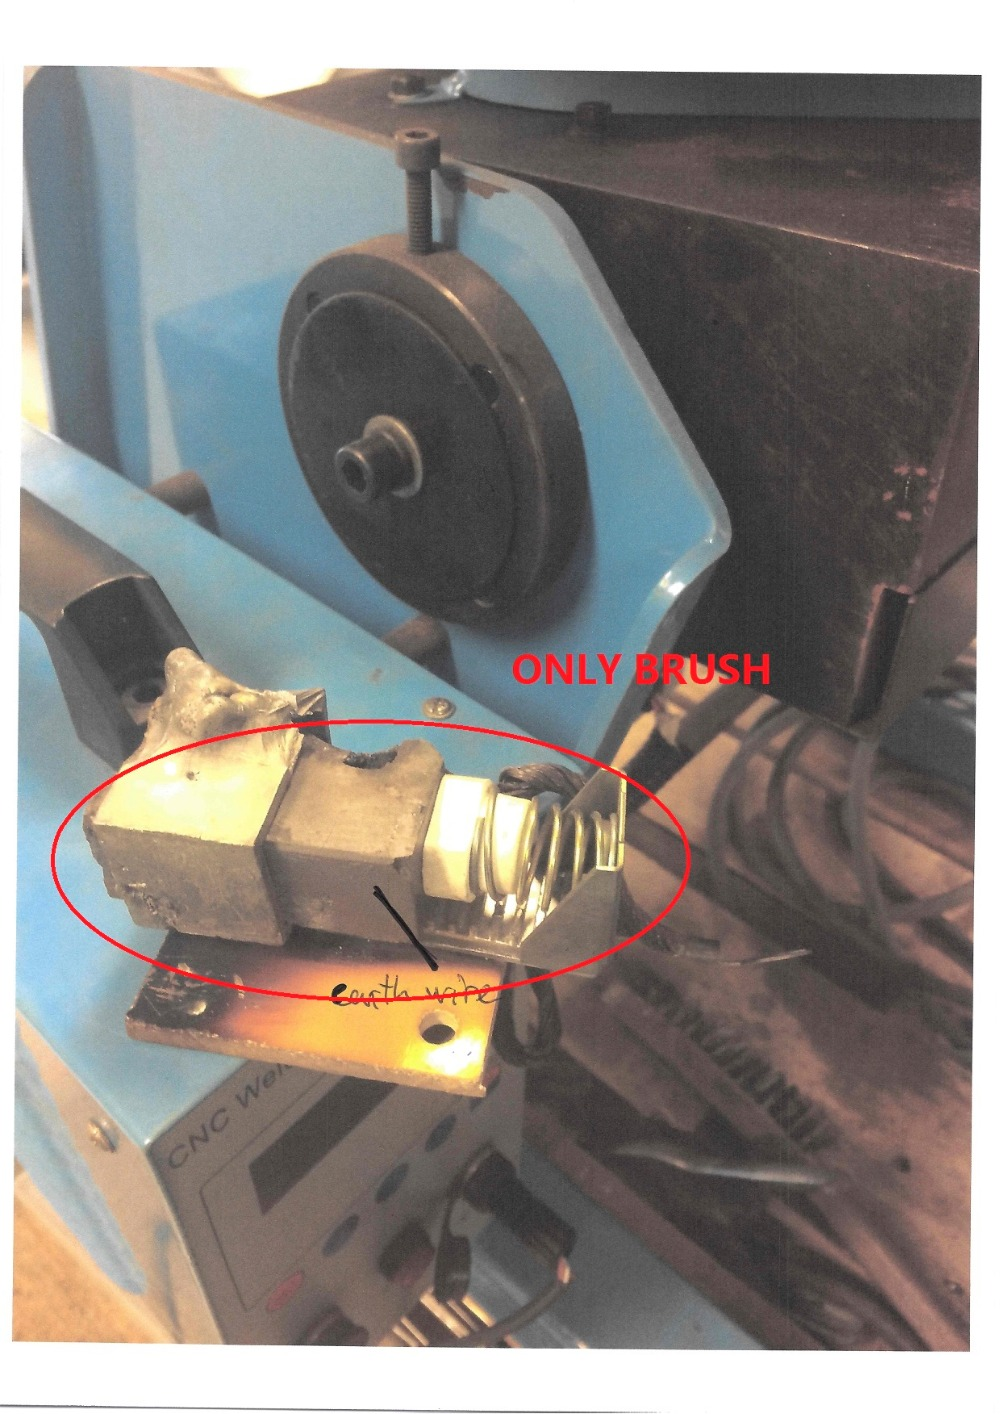 ONLY BRUSH for CNC-100 CNC-200 CNC-300 3D Adjustable Welding Positioner Turn Table Tube Welder semi-automatic welding